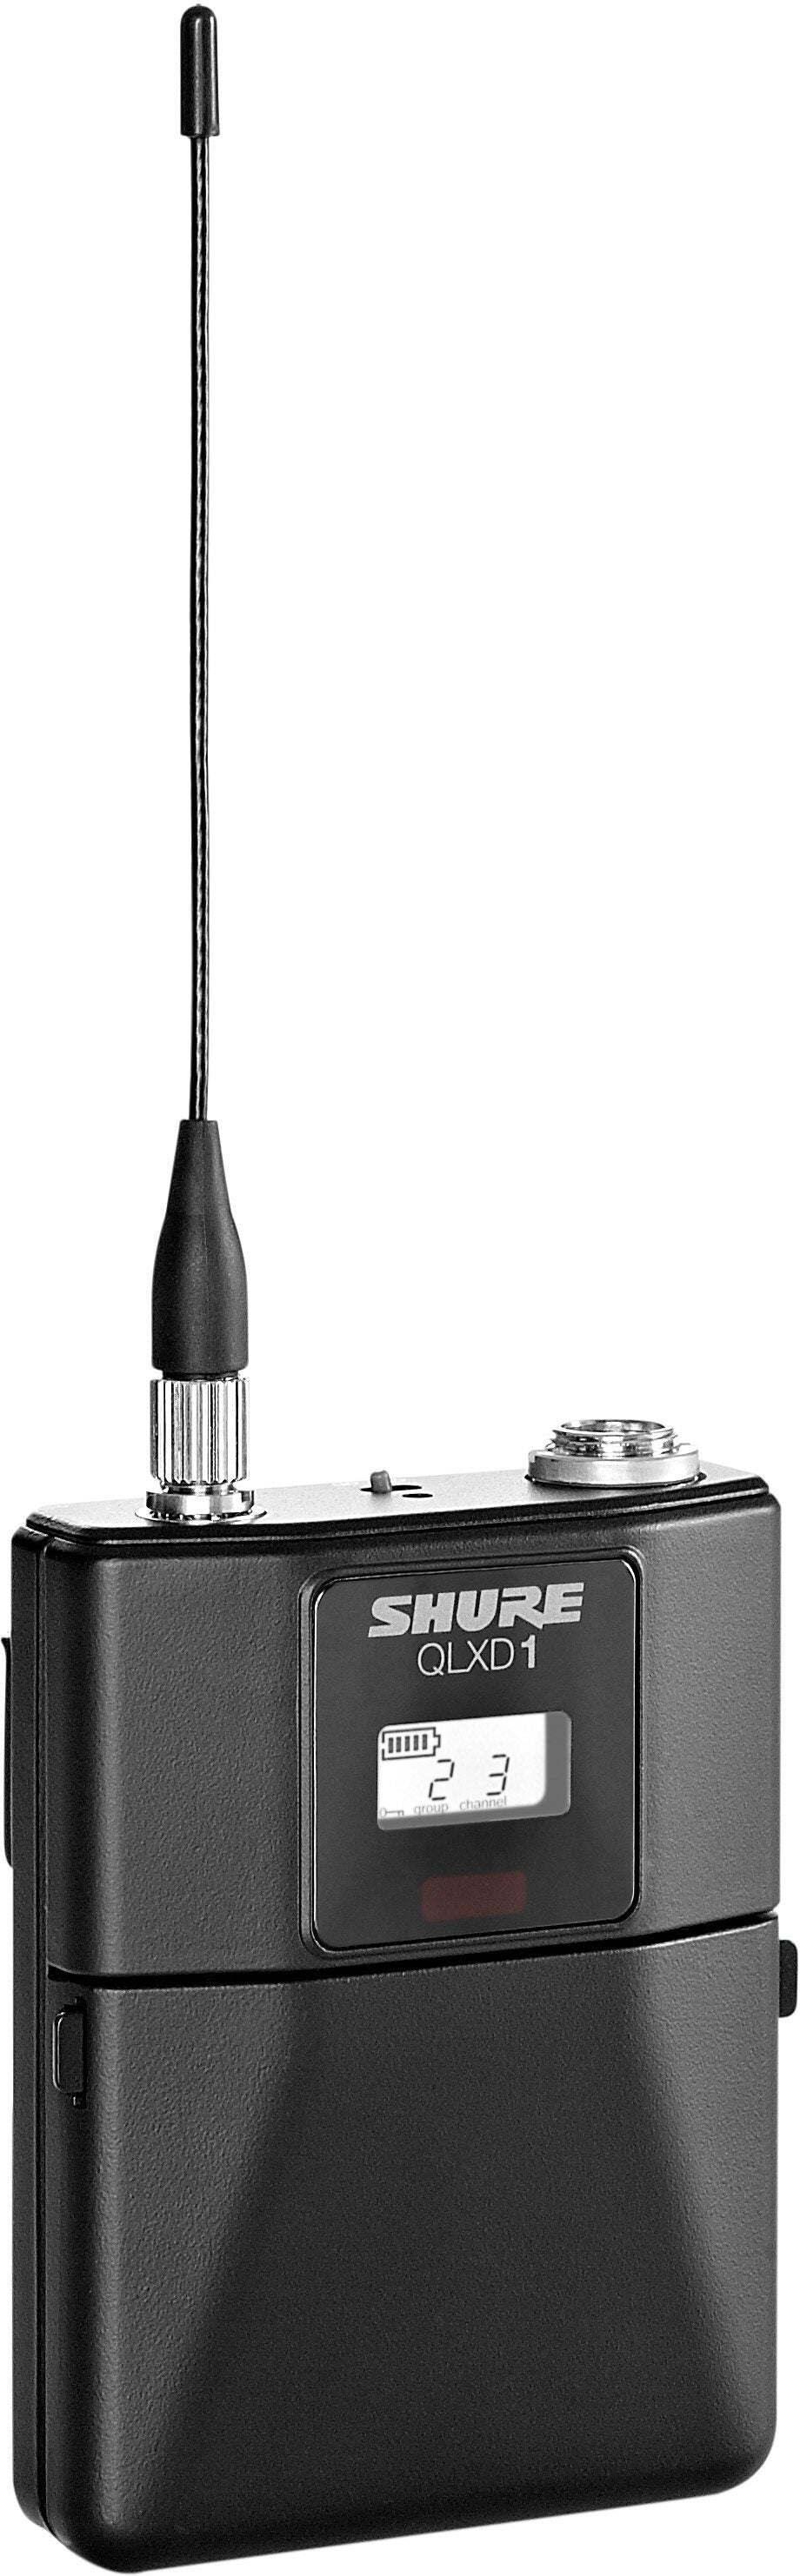 Shure QLXD1485 Wireless System with WL185 Lavalier Microphone, Band H50 (534 - 598 MHz)